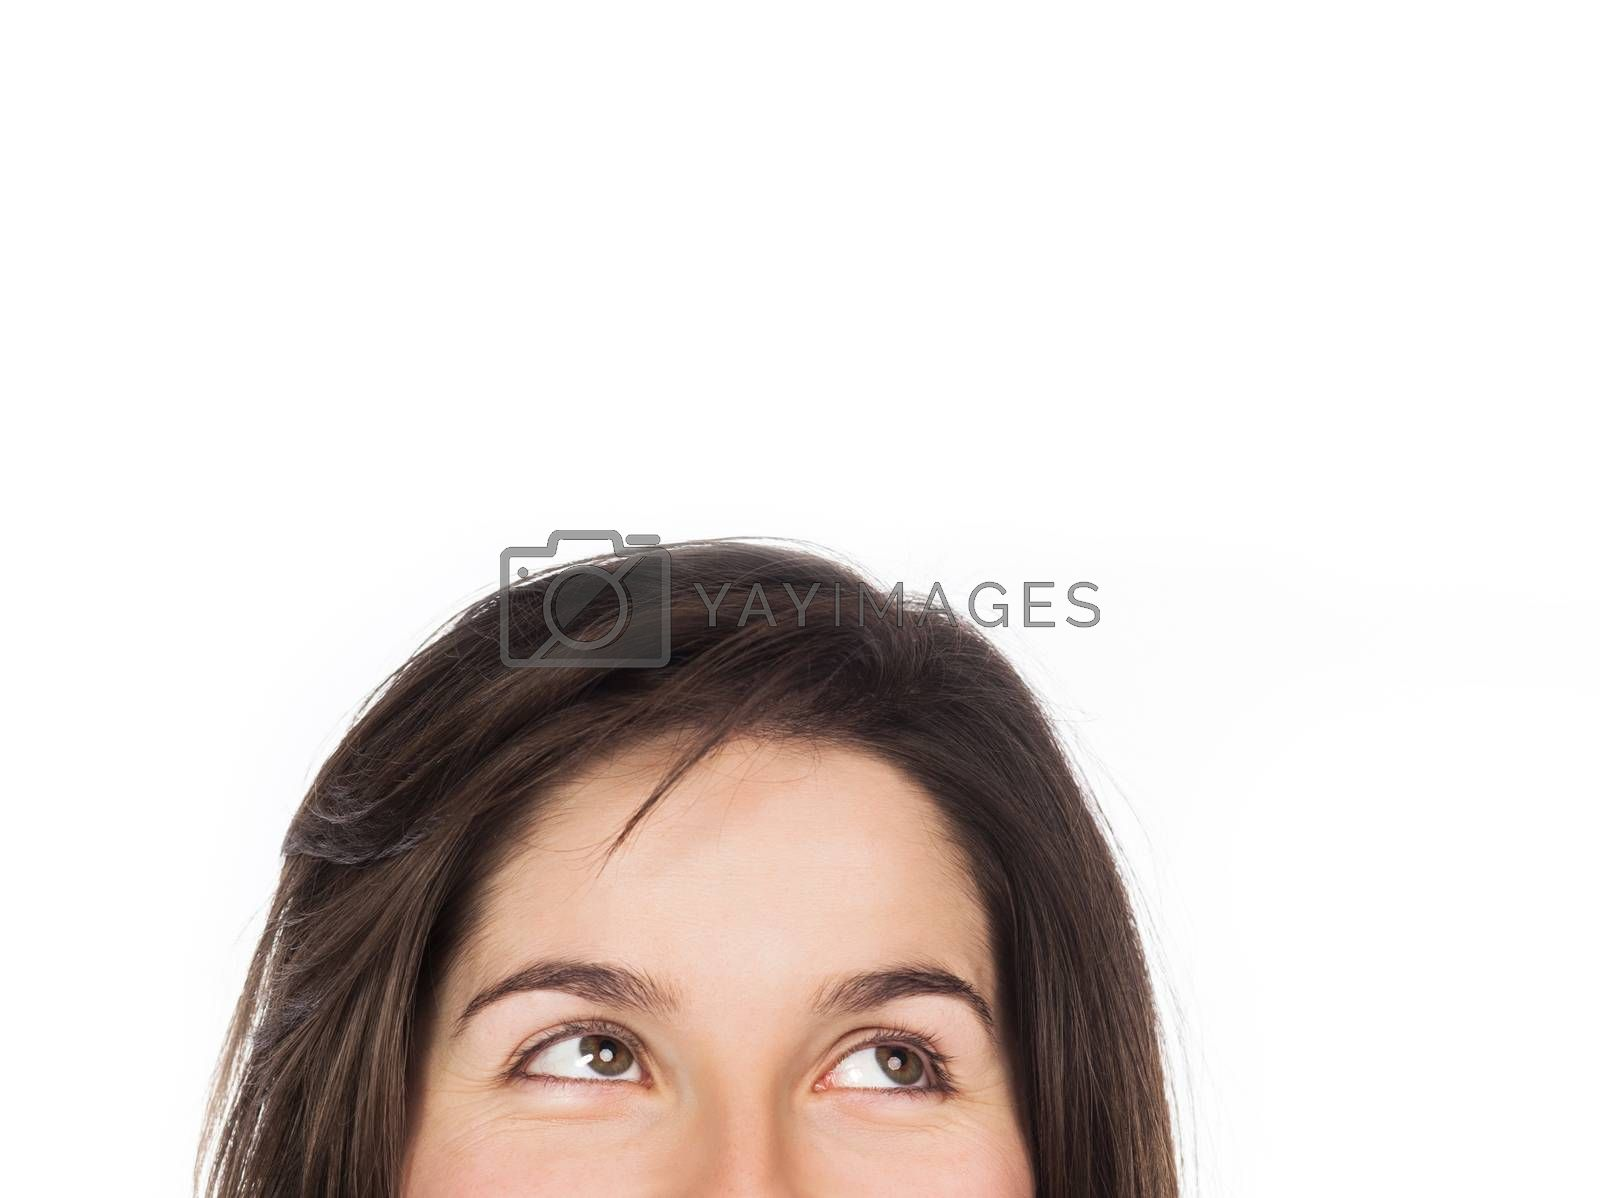 Close-up view of eyes looking up, copy space, isolated on white